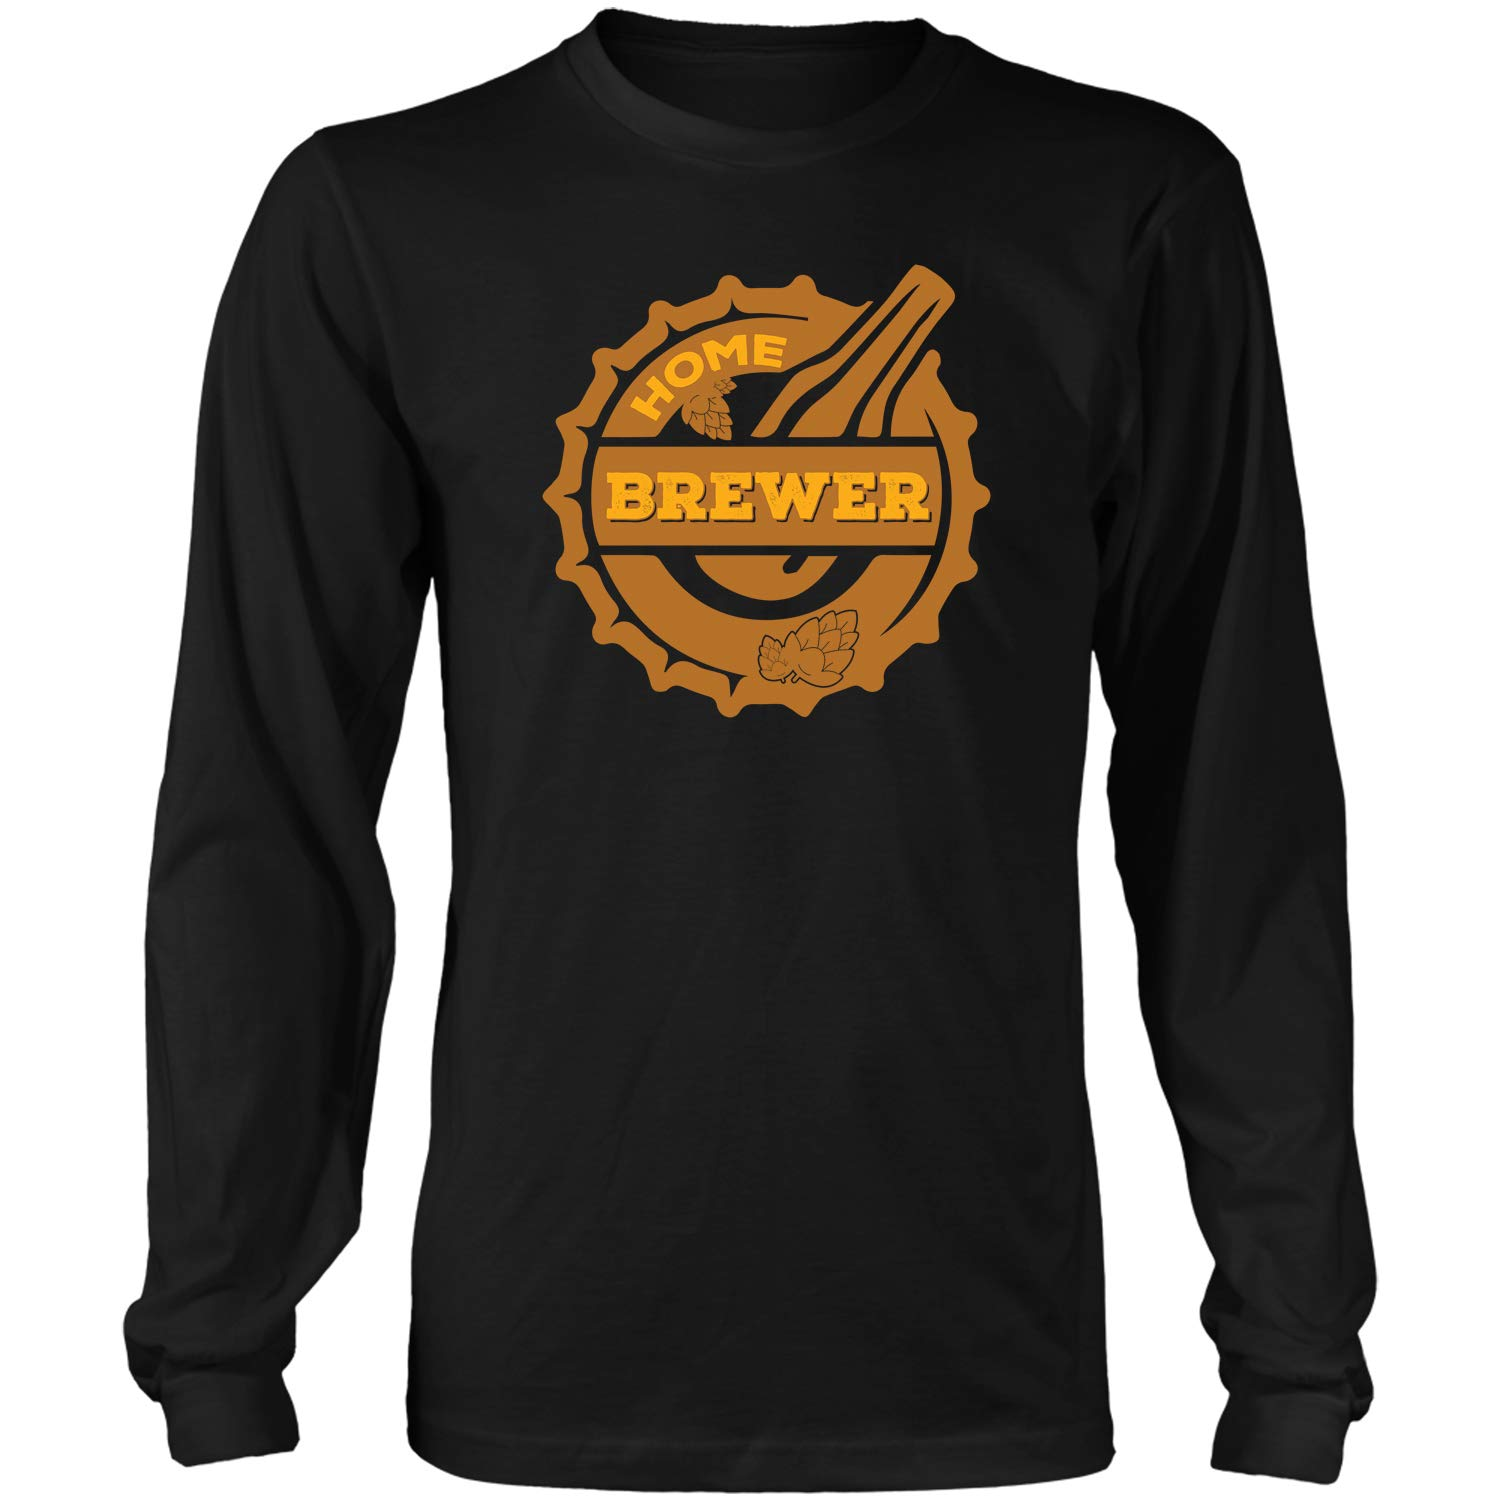 Home Brewerfun Gifts For Beer Drinkercool Drink Tshirt